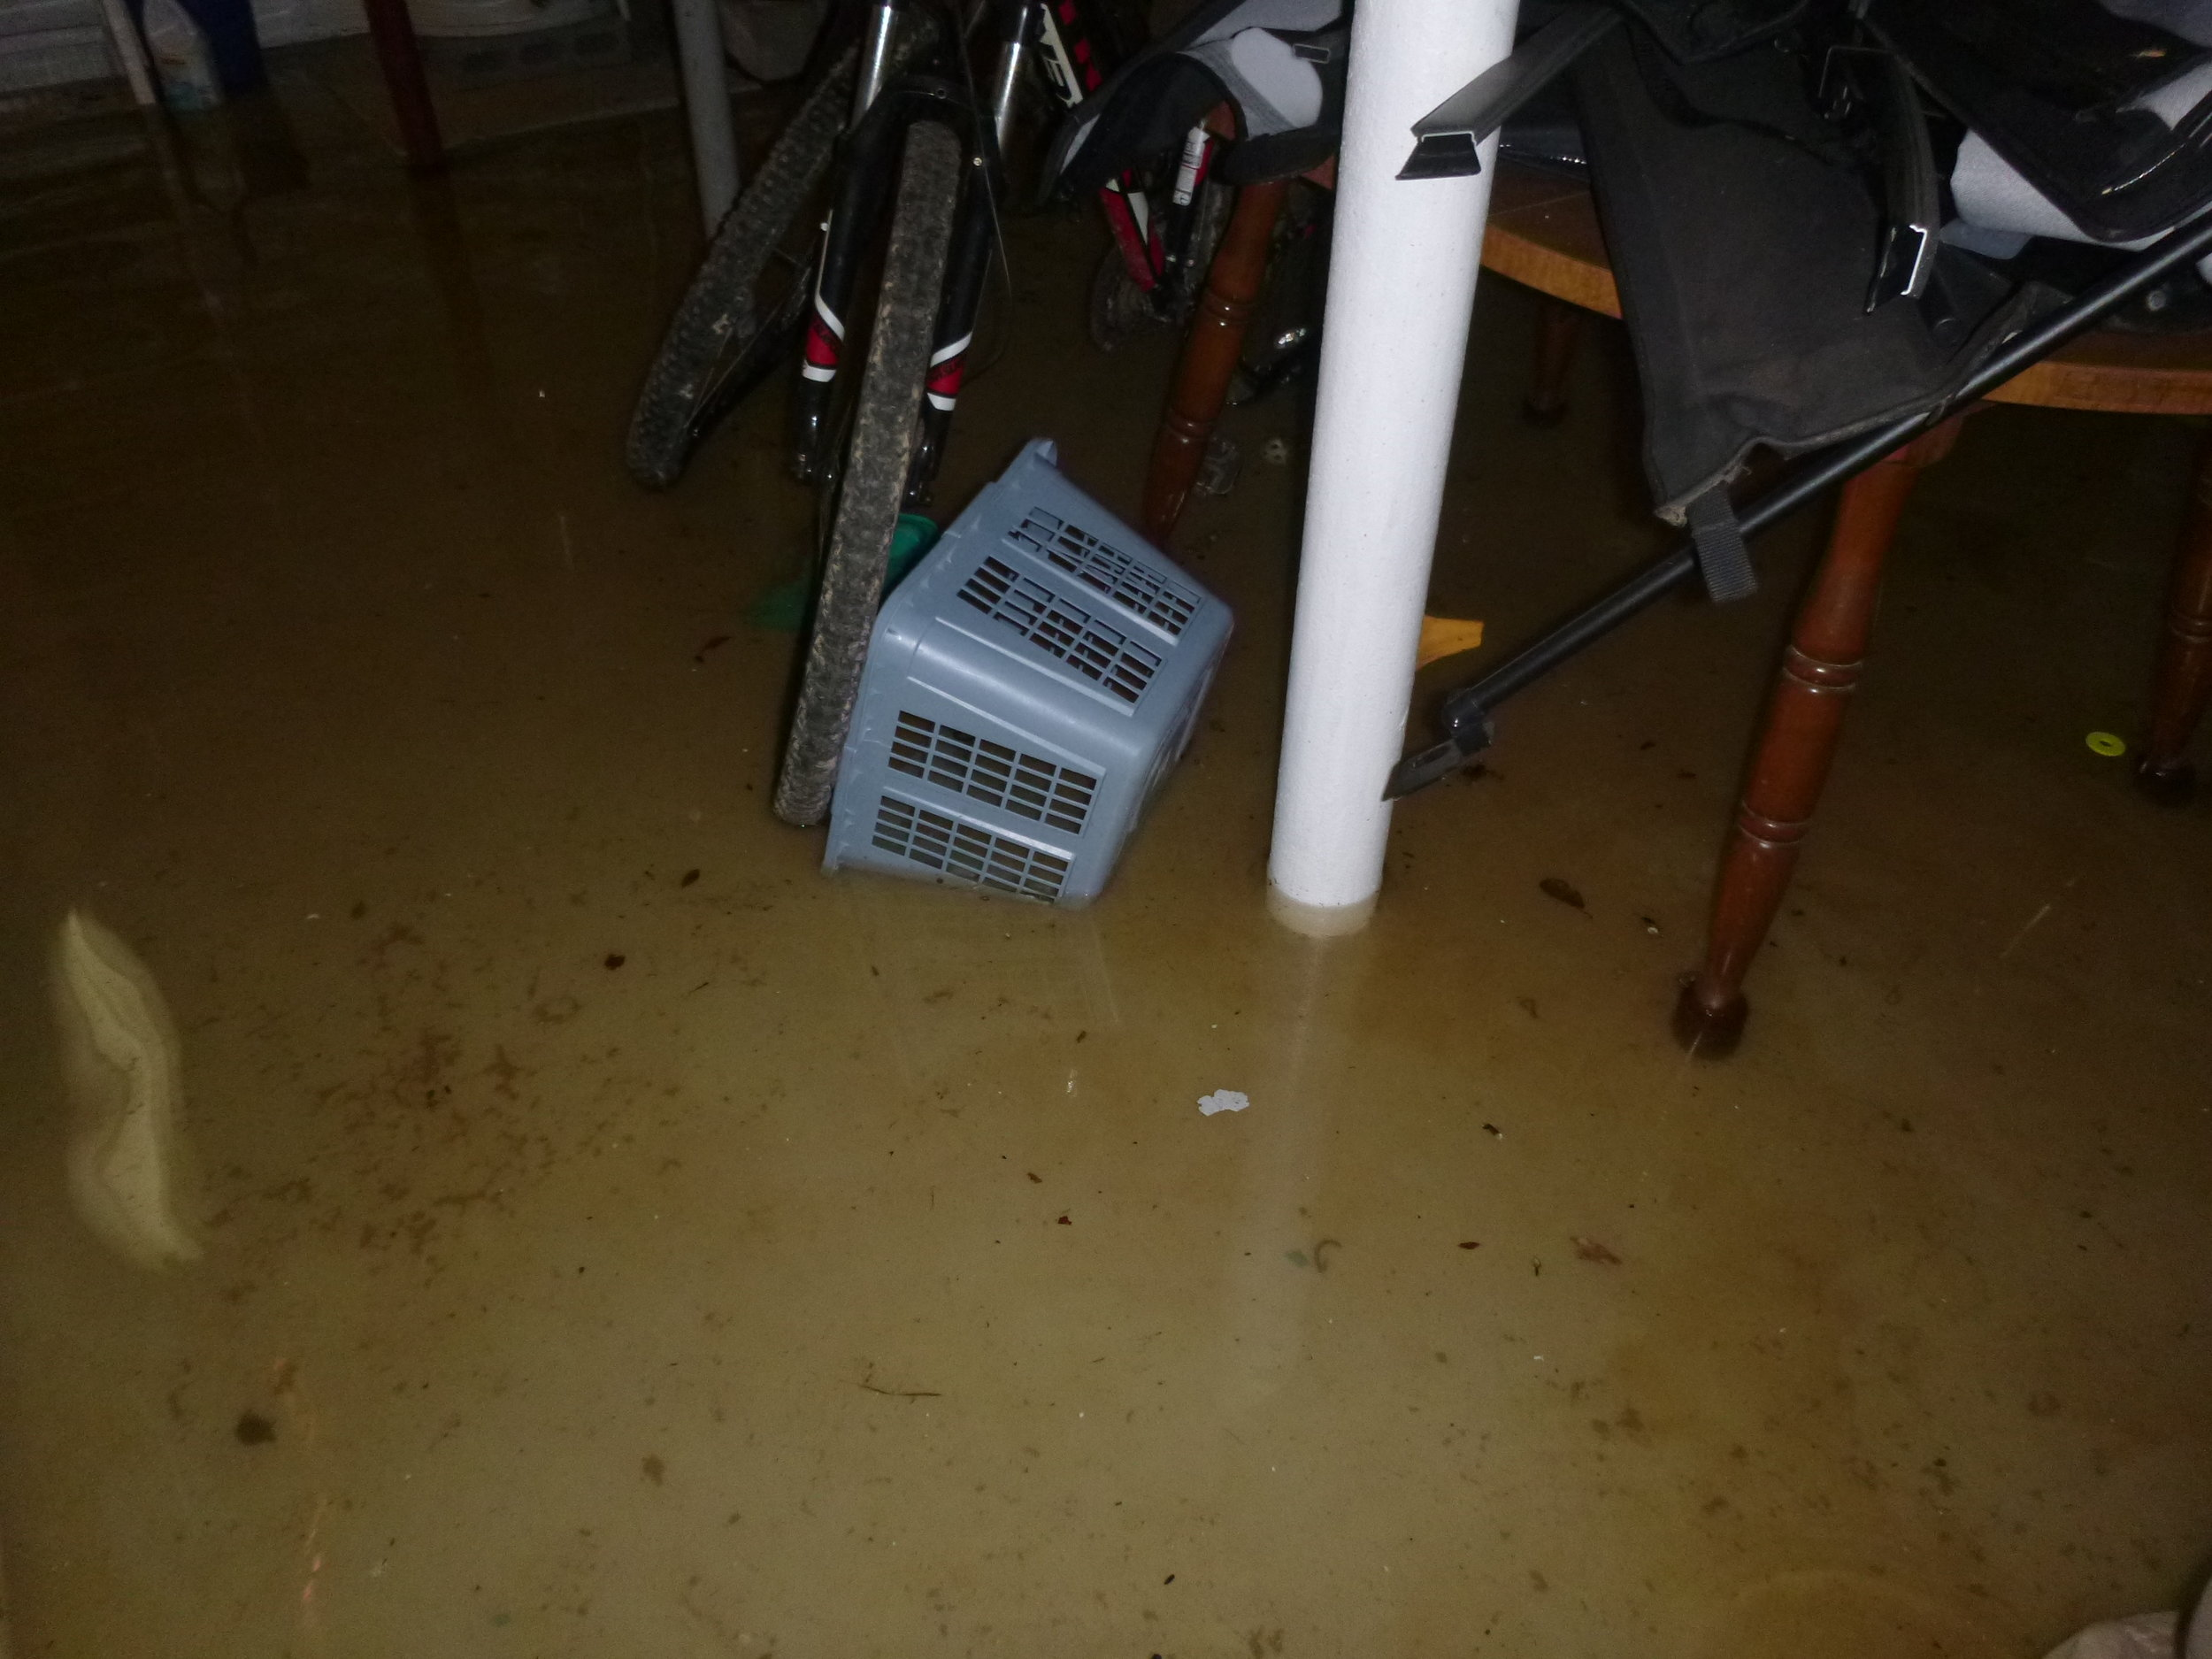 Common Causes of Water Damage - Sewage BackupsPipe BurstHot Water Heater LeaksAppliance LeaksOverflowed Sink, toilet, or bathFlood DamageTornado, Hurricane, or other storm damages